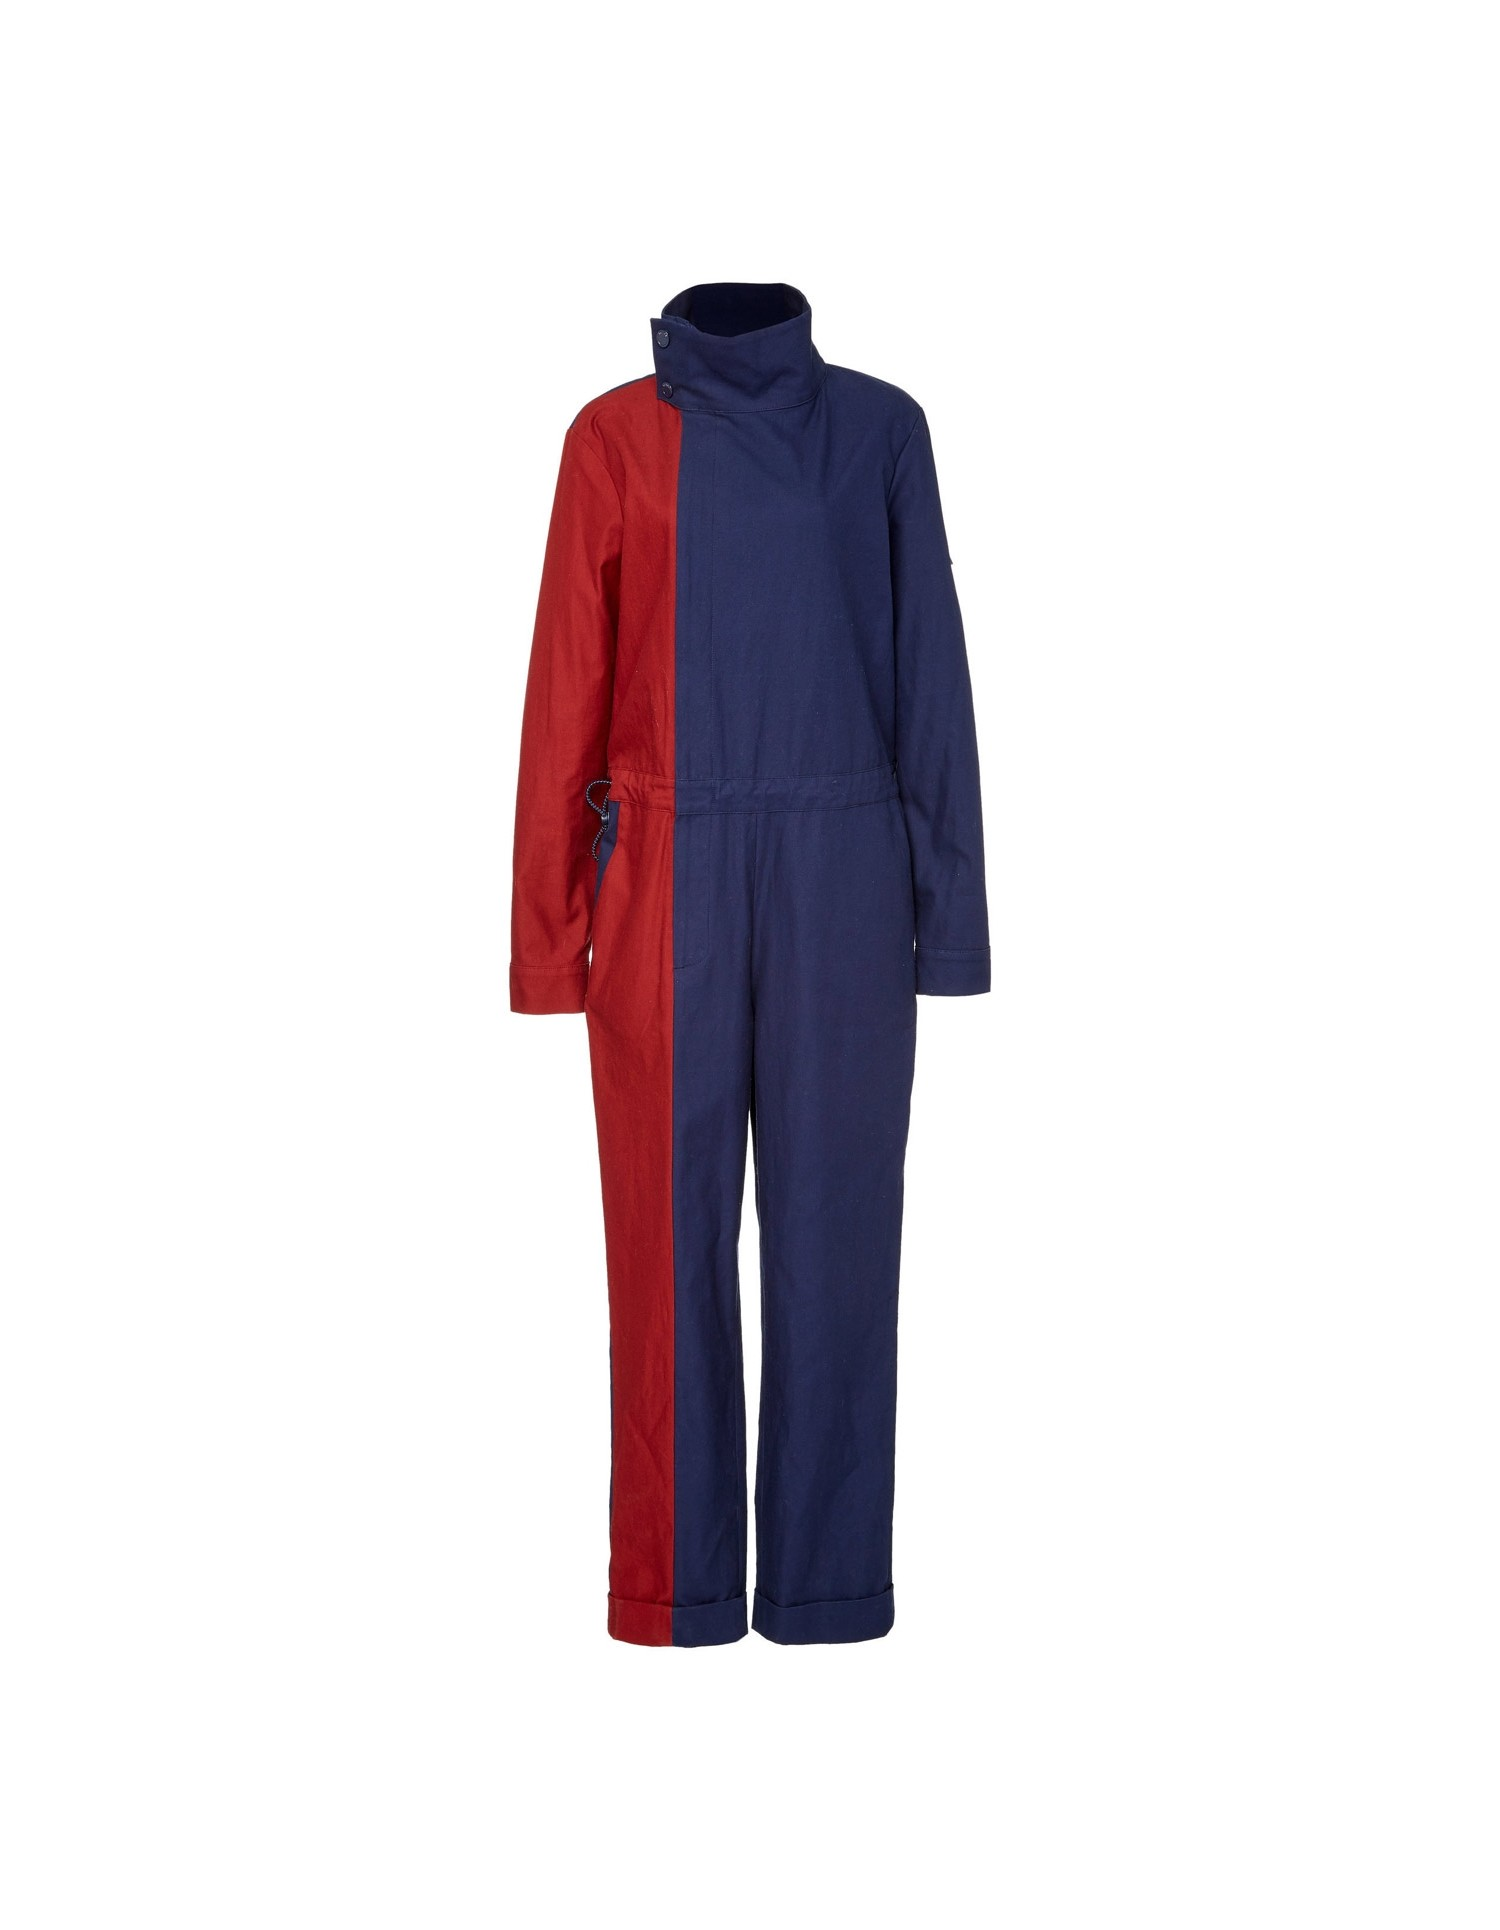 MONSE Two Tone Twill Jumpsuit Flat Front